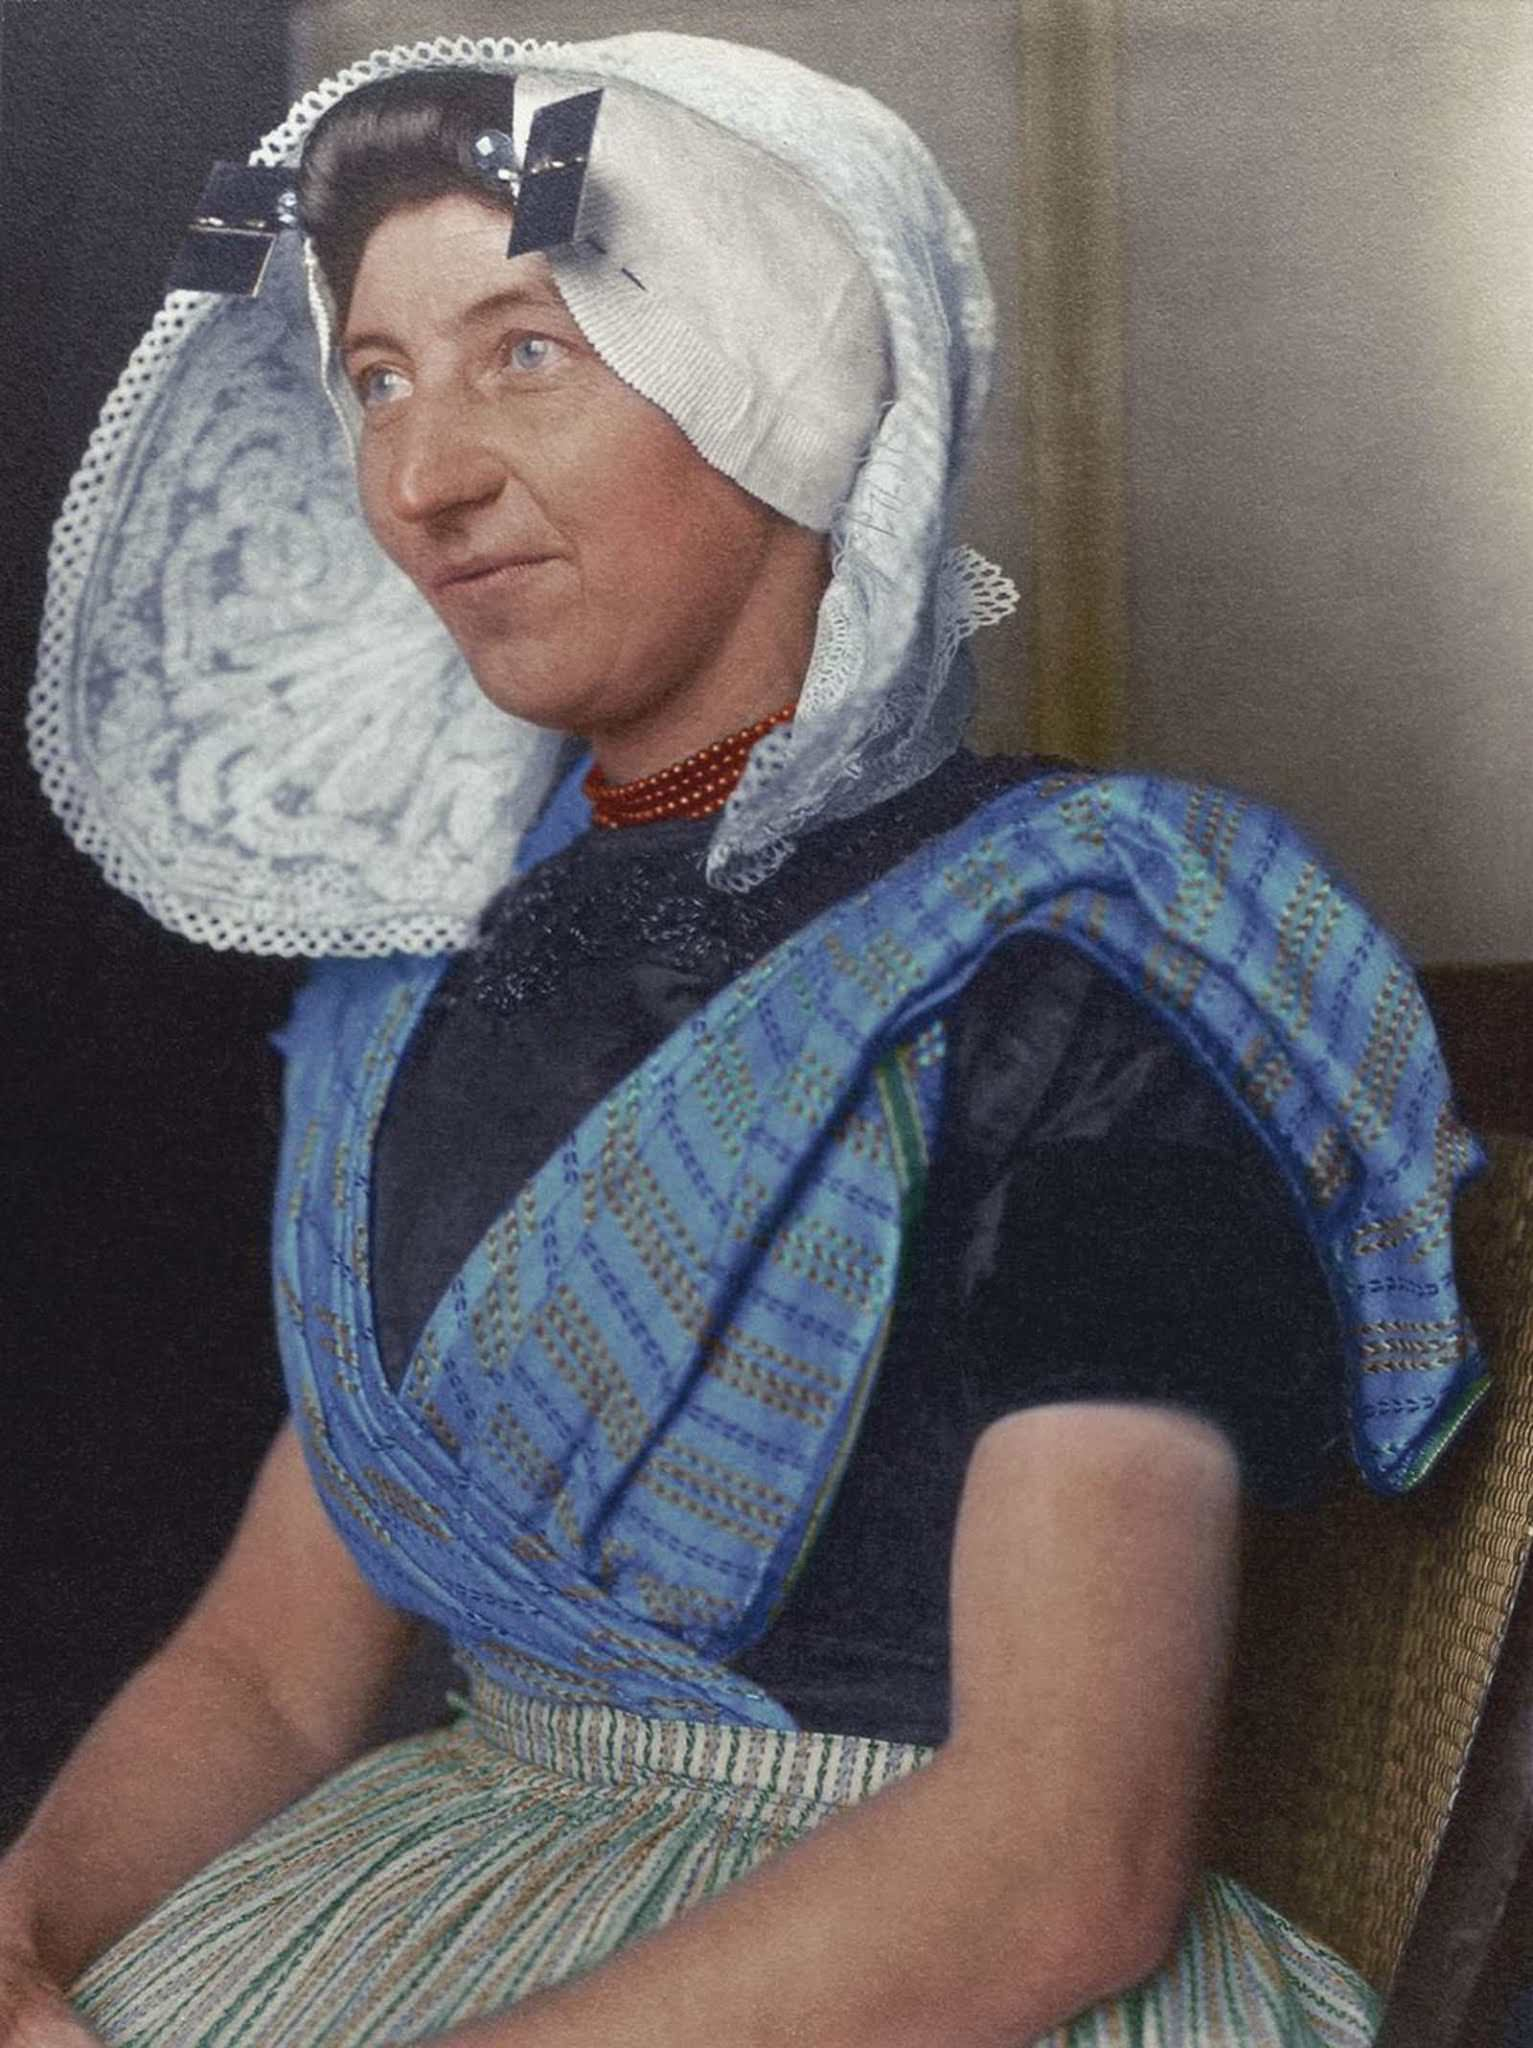 """Dutch woman."""" The large bonnet, which is arguably one of the most recognizable aspects of Dutch traditional dress, was usually made of white cotton or lace and sometimes had flaps or wings, and often came with a cap. The rest of the costume, like so many others, came in distinctly regional variation"""